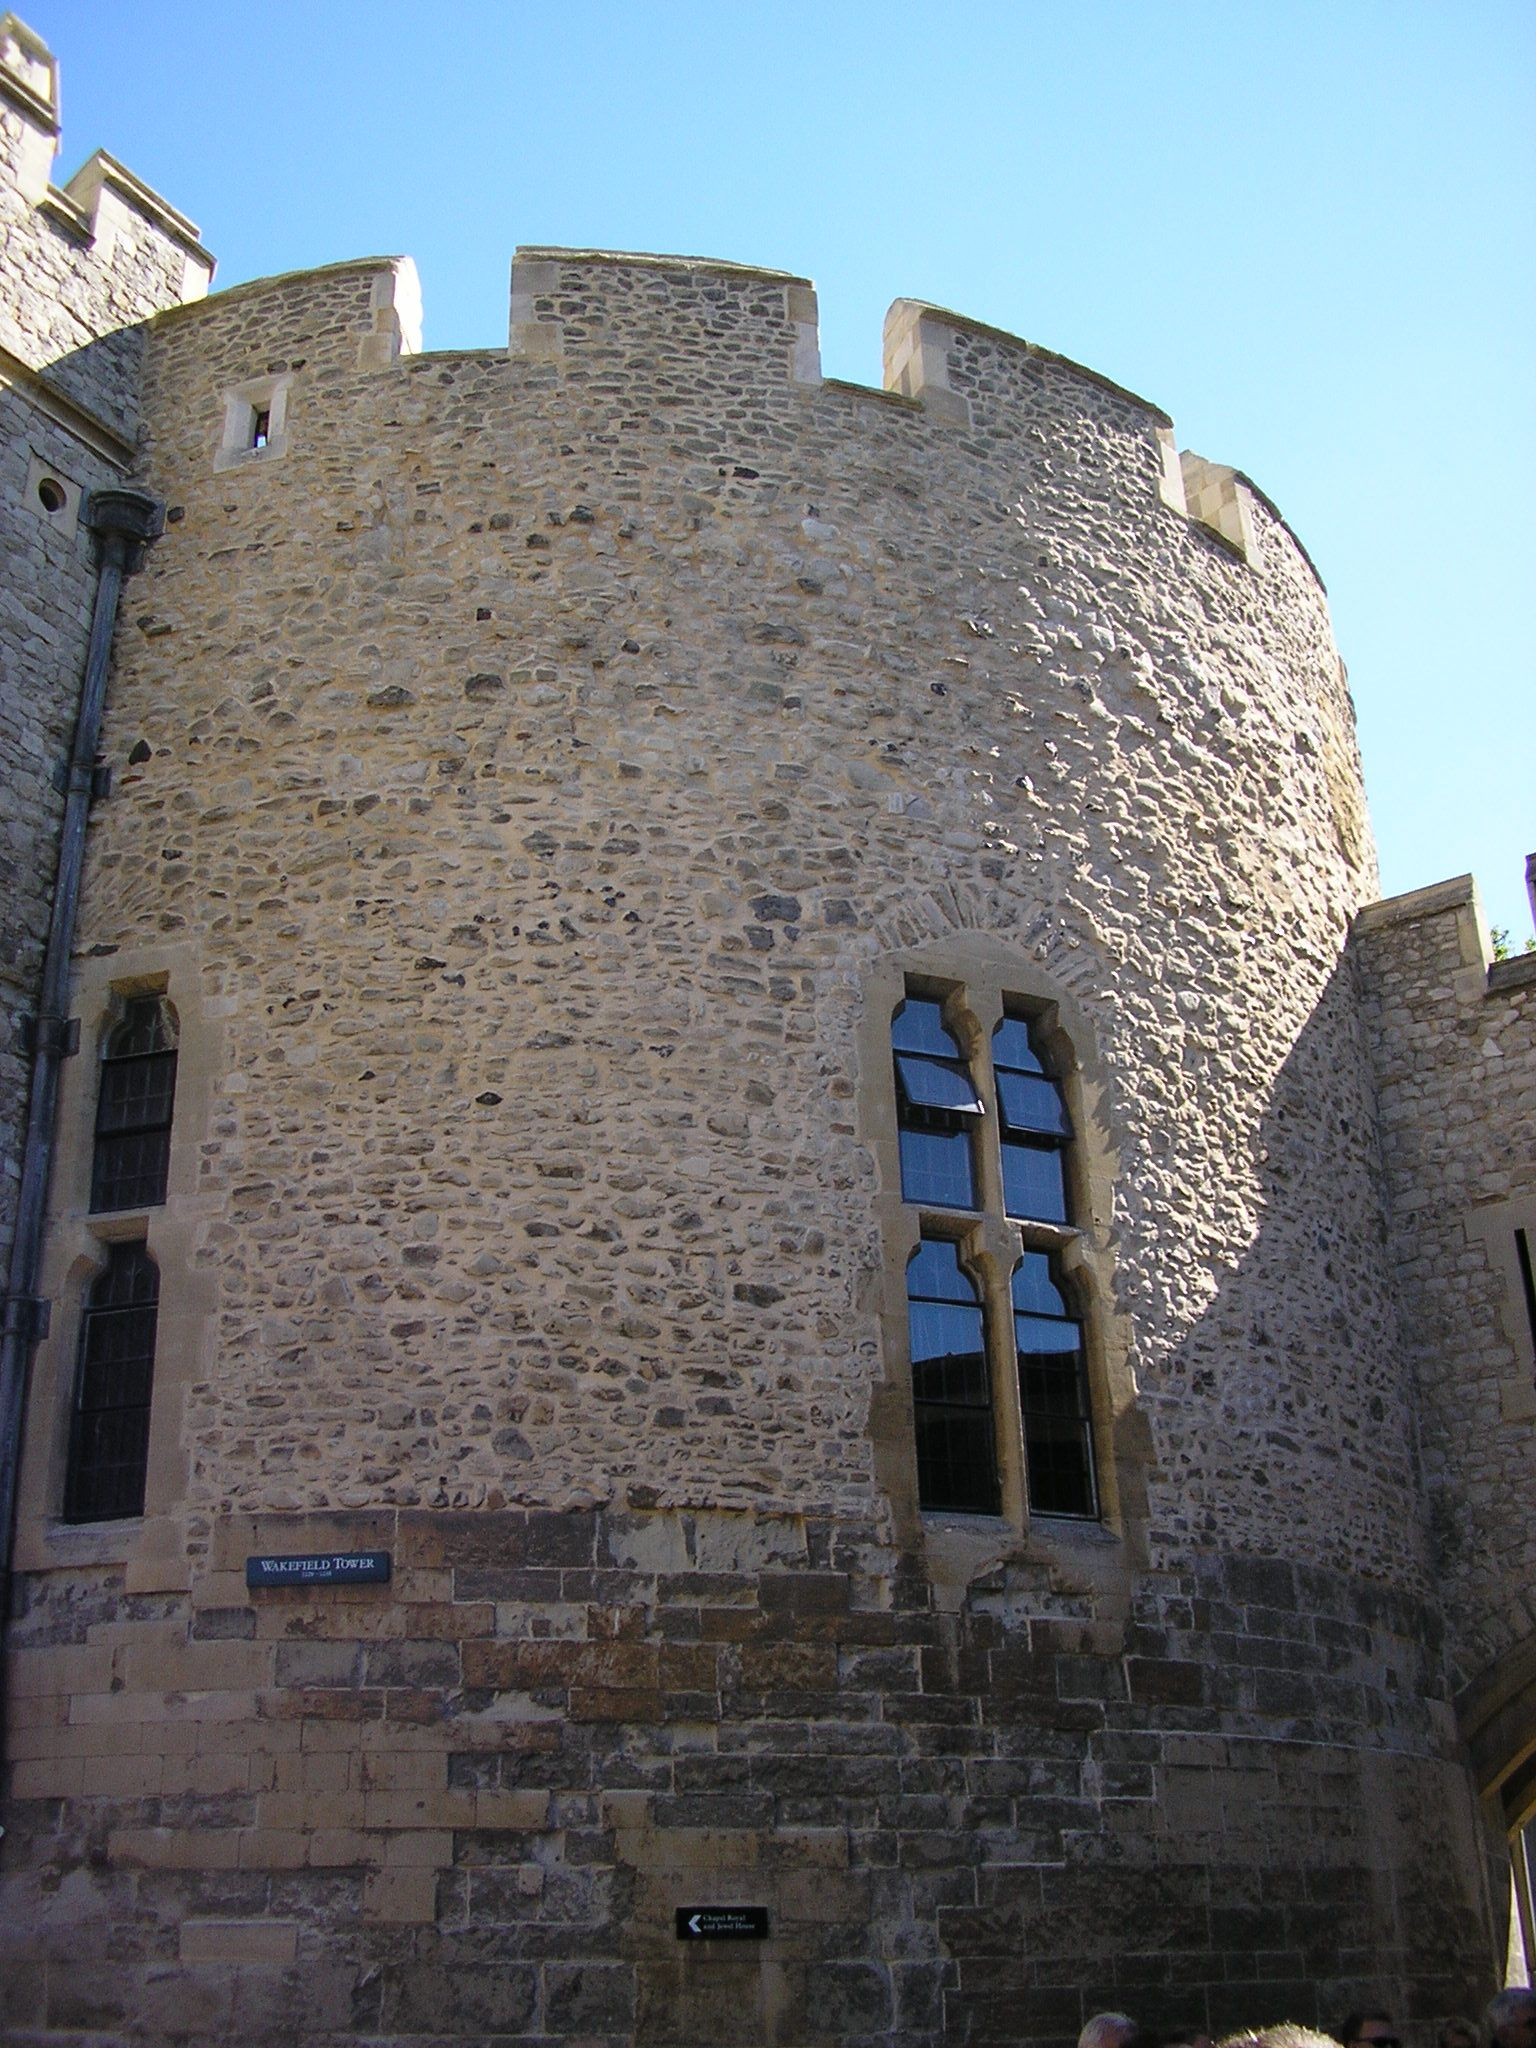 Wakefield Tower is just one of the 21 towers which, together, form the Tower of London castle complex.